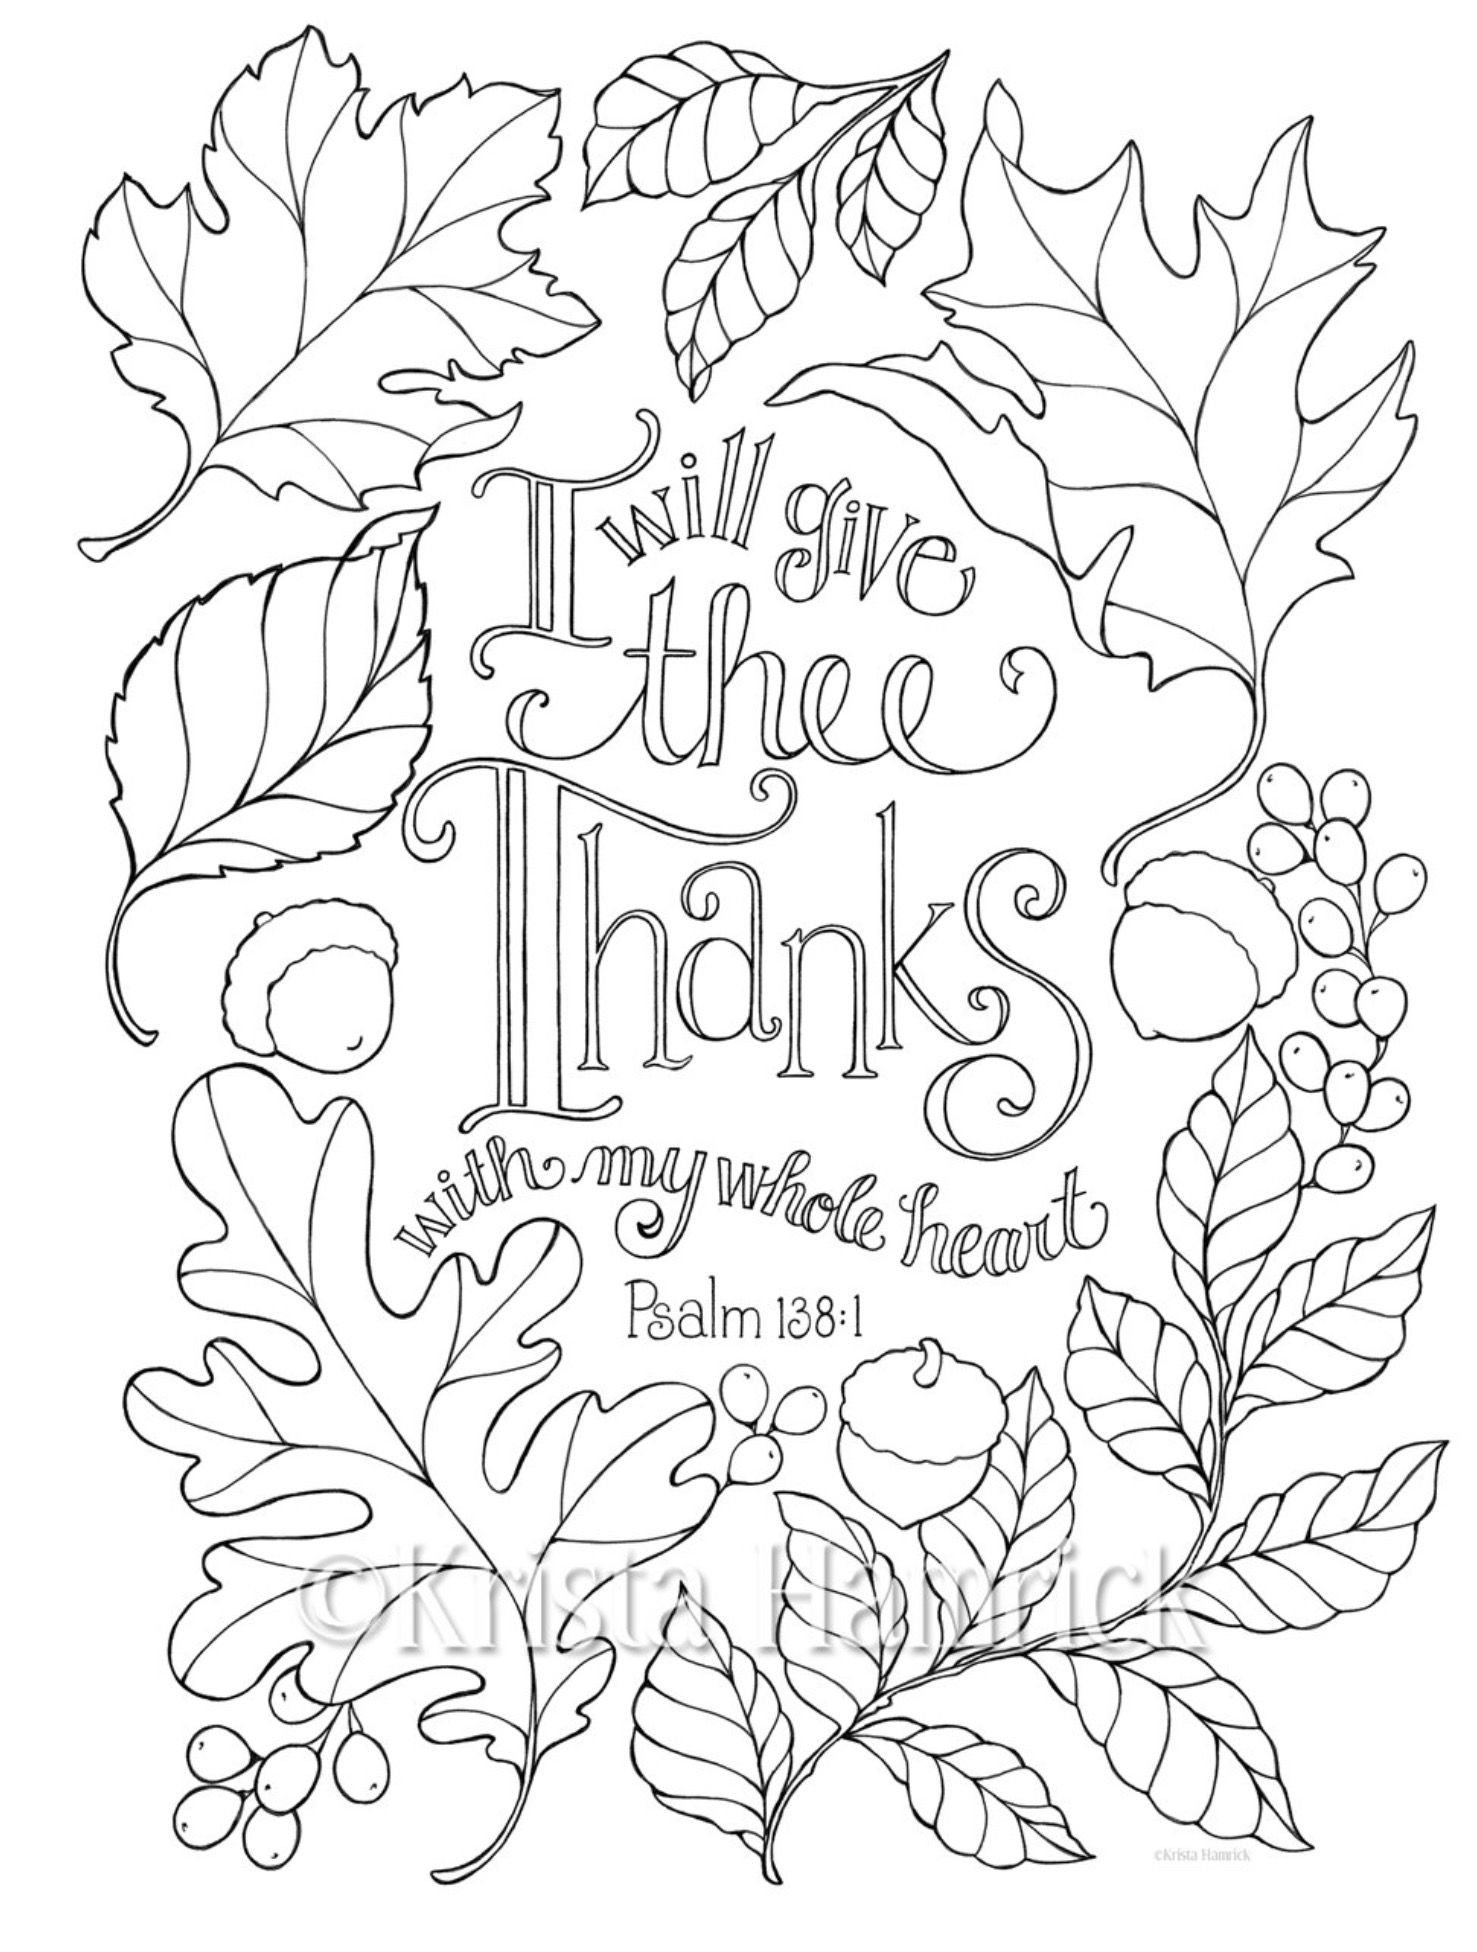 psalm 98 coloring page scripture and faces update from victory road coloring 98 page psalm